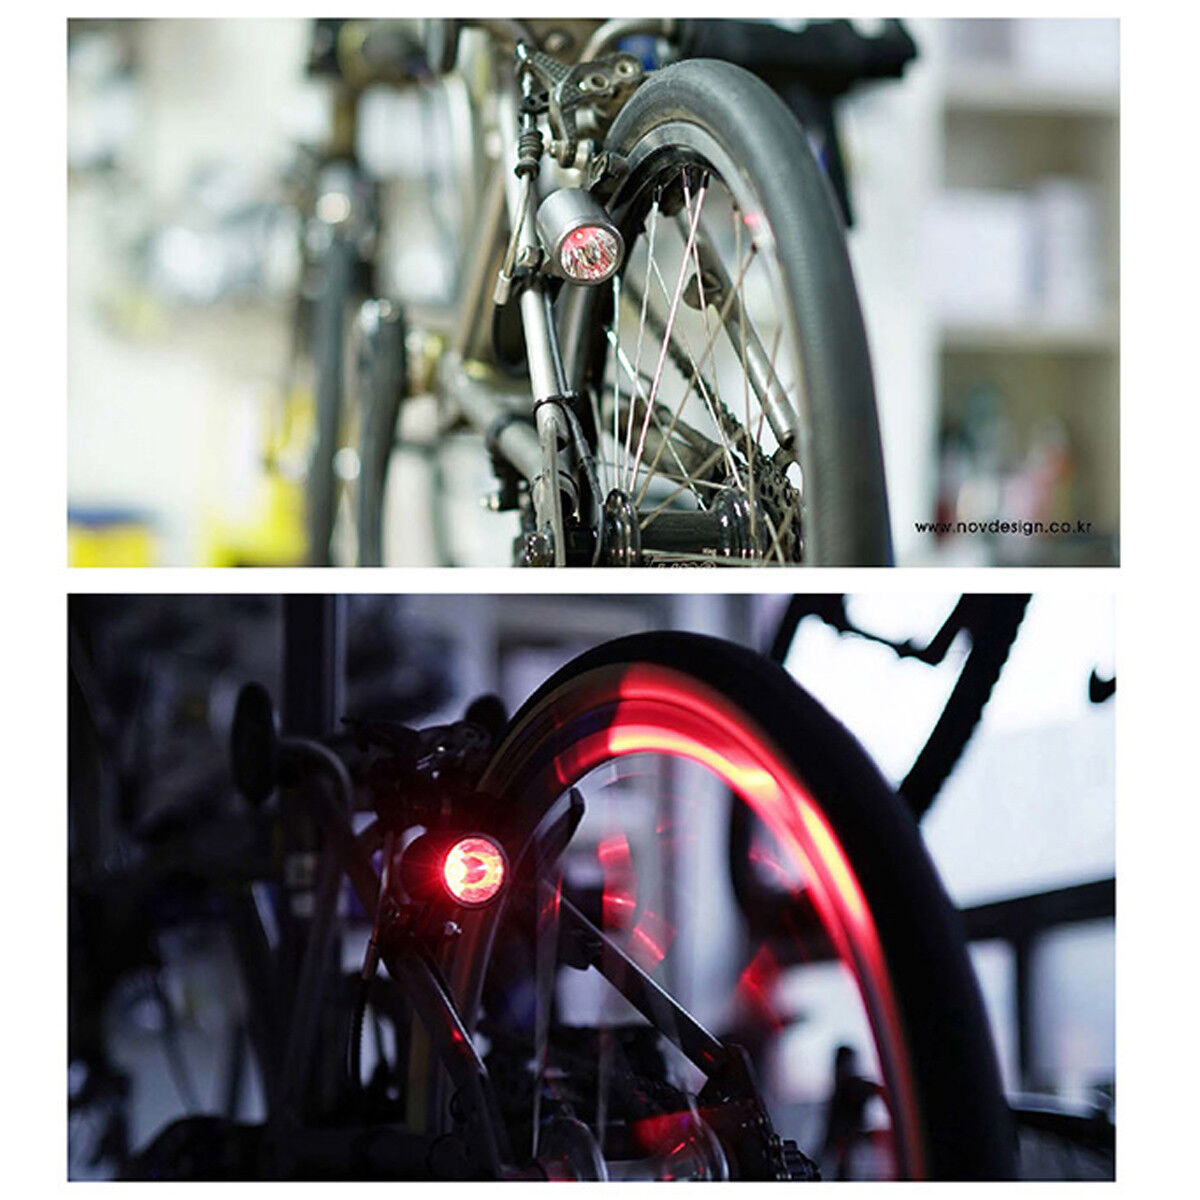 Nov dynamo set for Tail Light Ver 3.0, contactless type